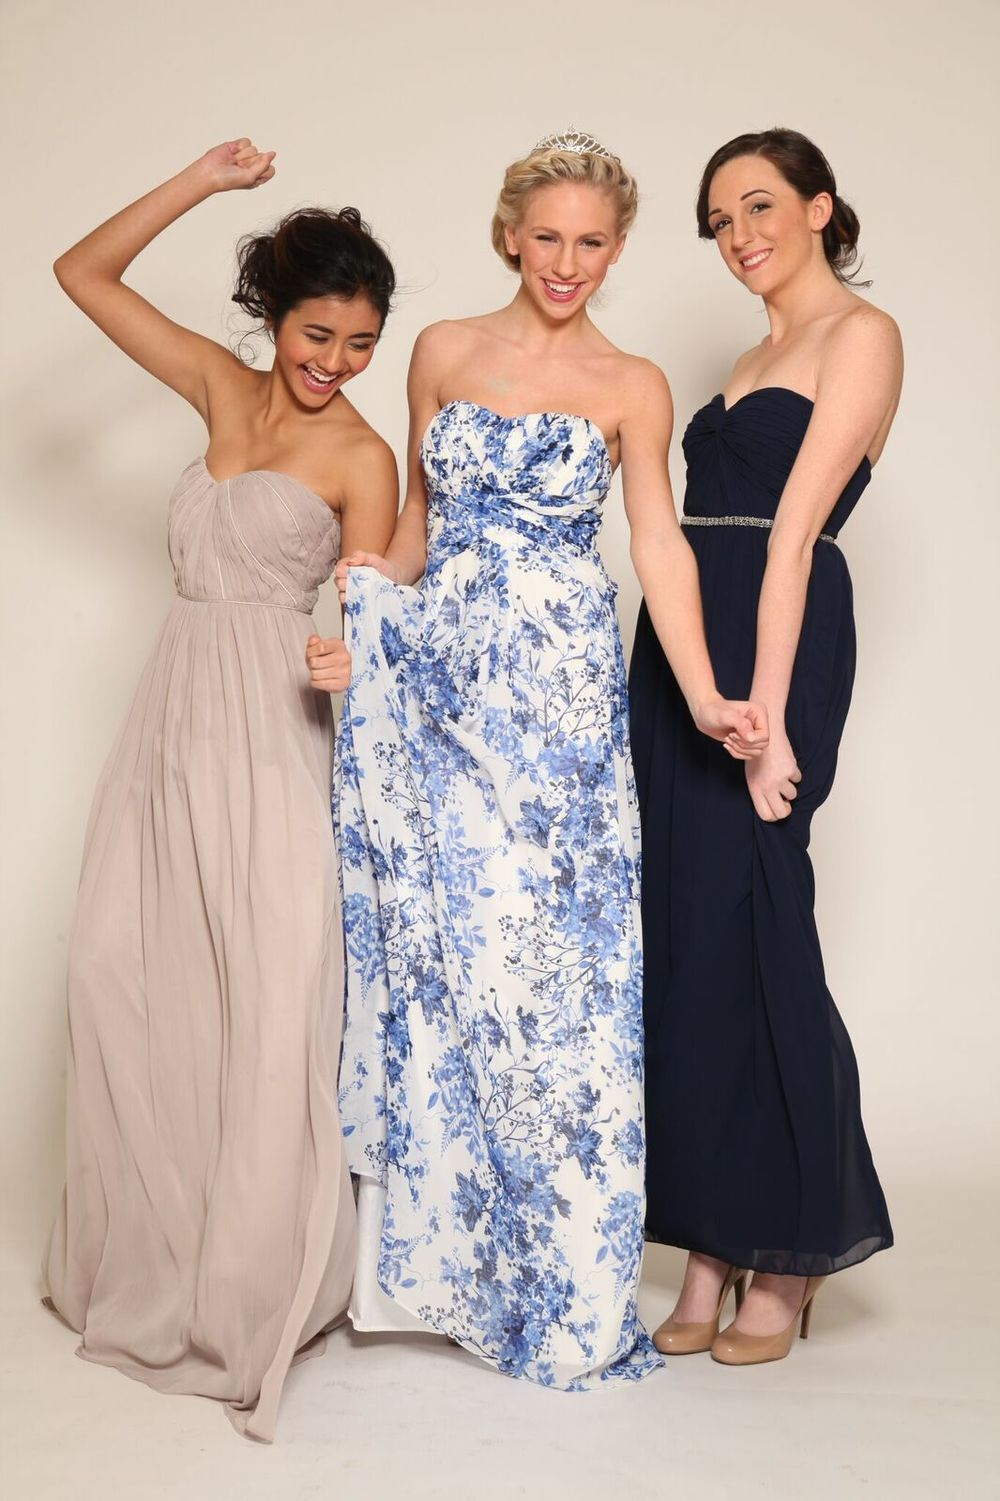 From Left to Right: Mauve Strapless Gown with Satin Piping Detail $89 // Floral Strapless Chiffon Gown $89 // Navy Strapless Chiffon Gown With Waistline Beading Detail $89